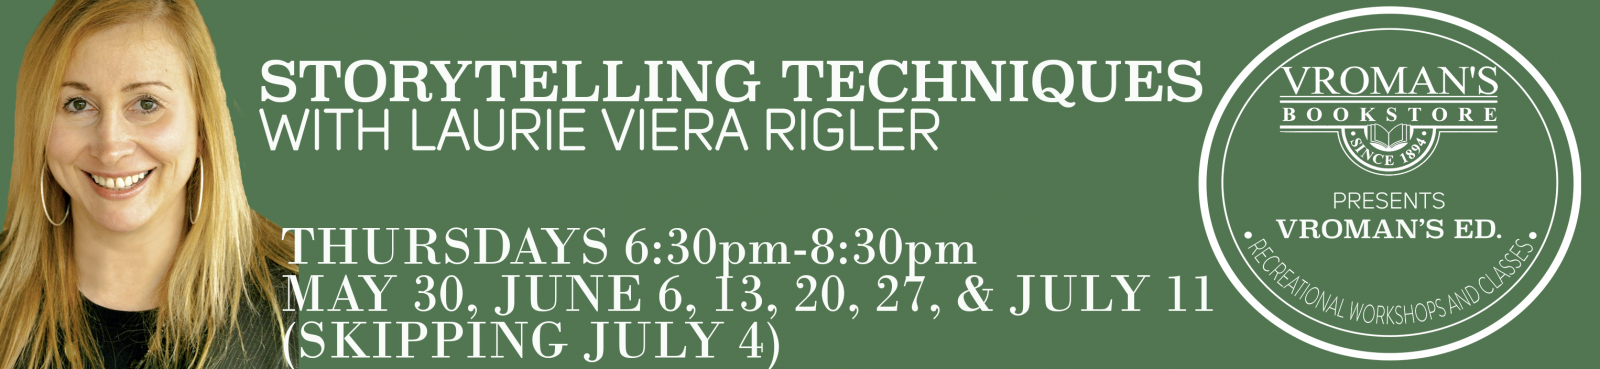 Storytelling Techniques Writing Workshop with Laurie Viera Rigler